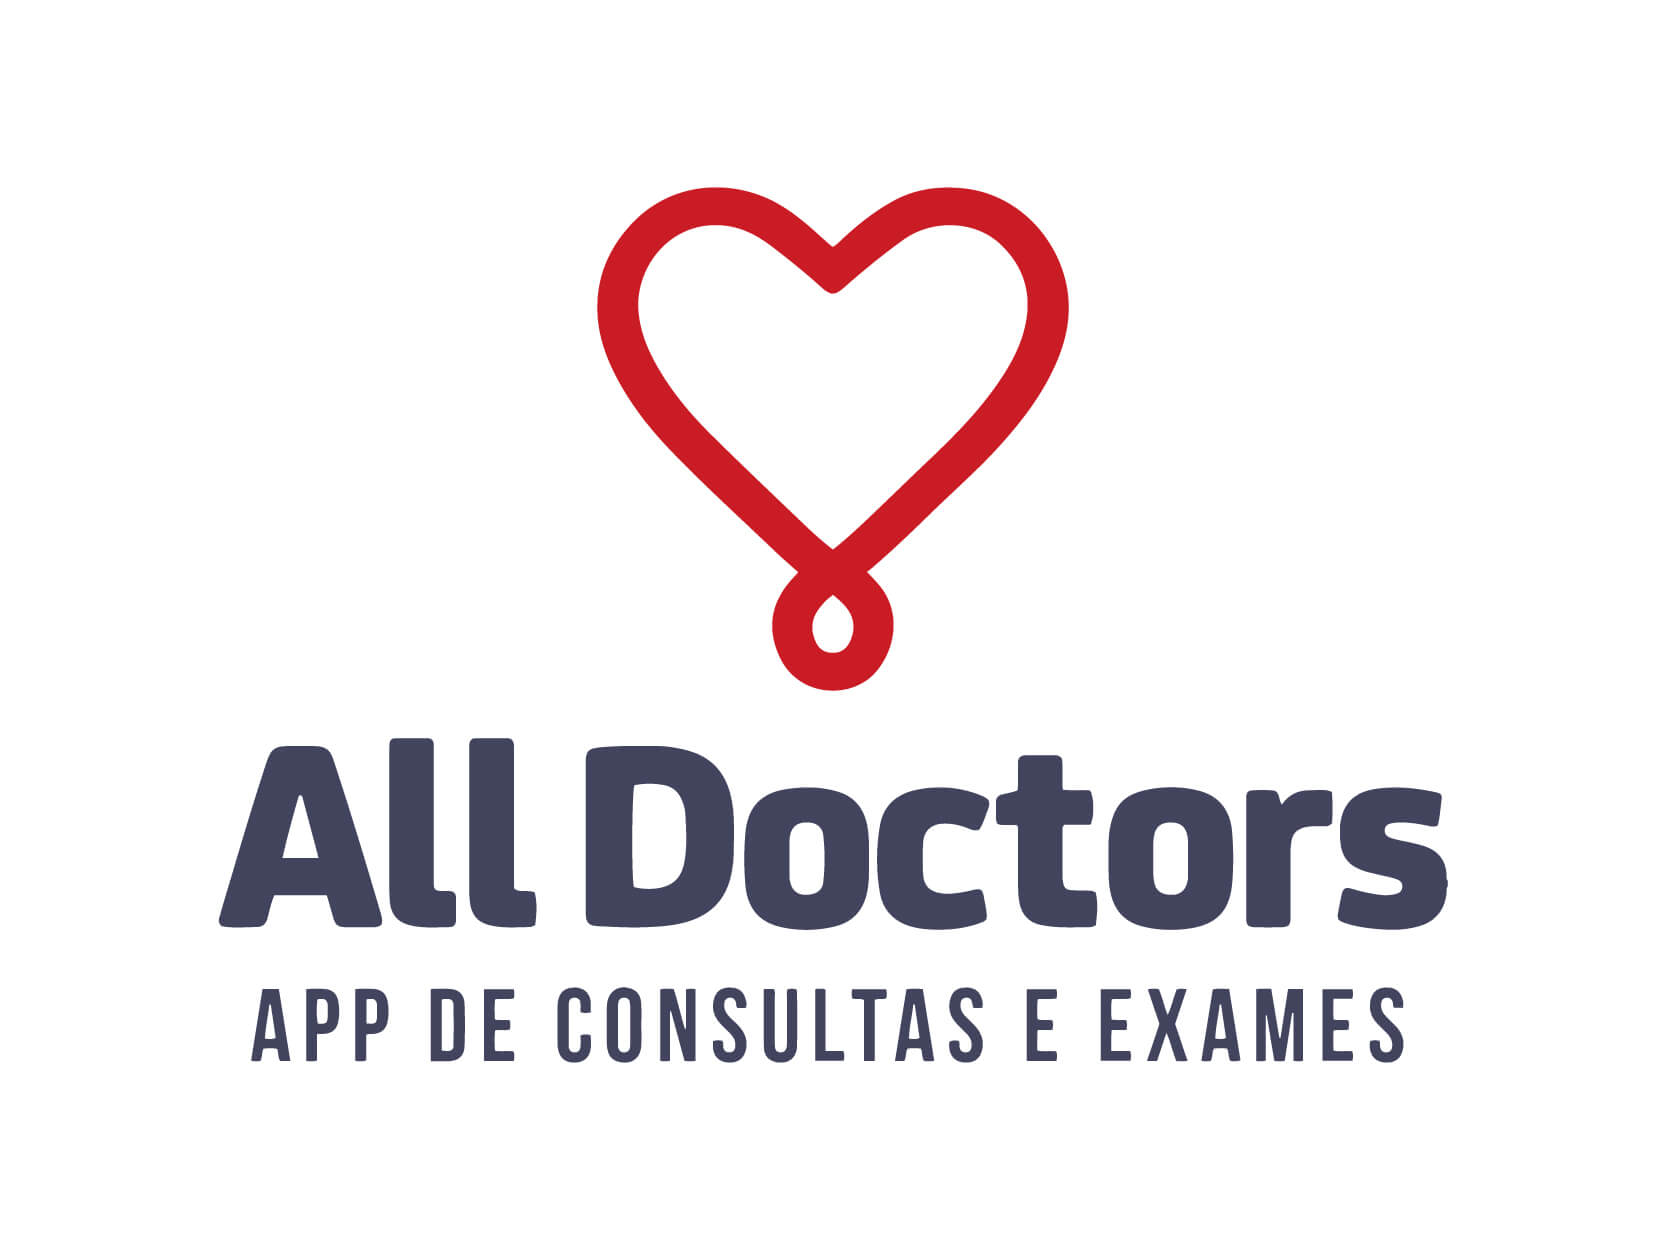 All Doctors